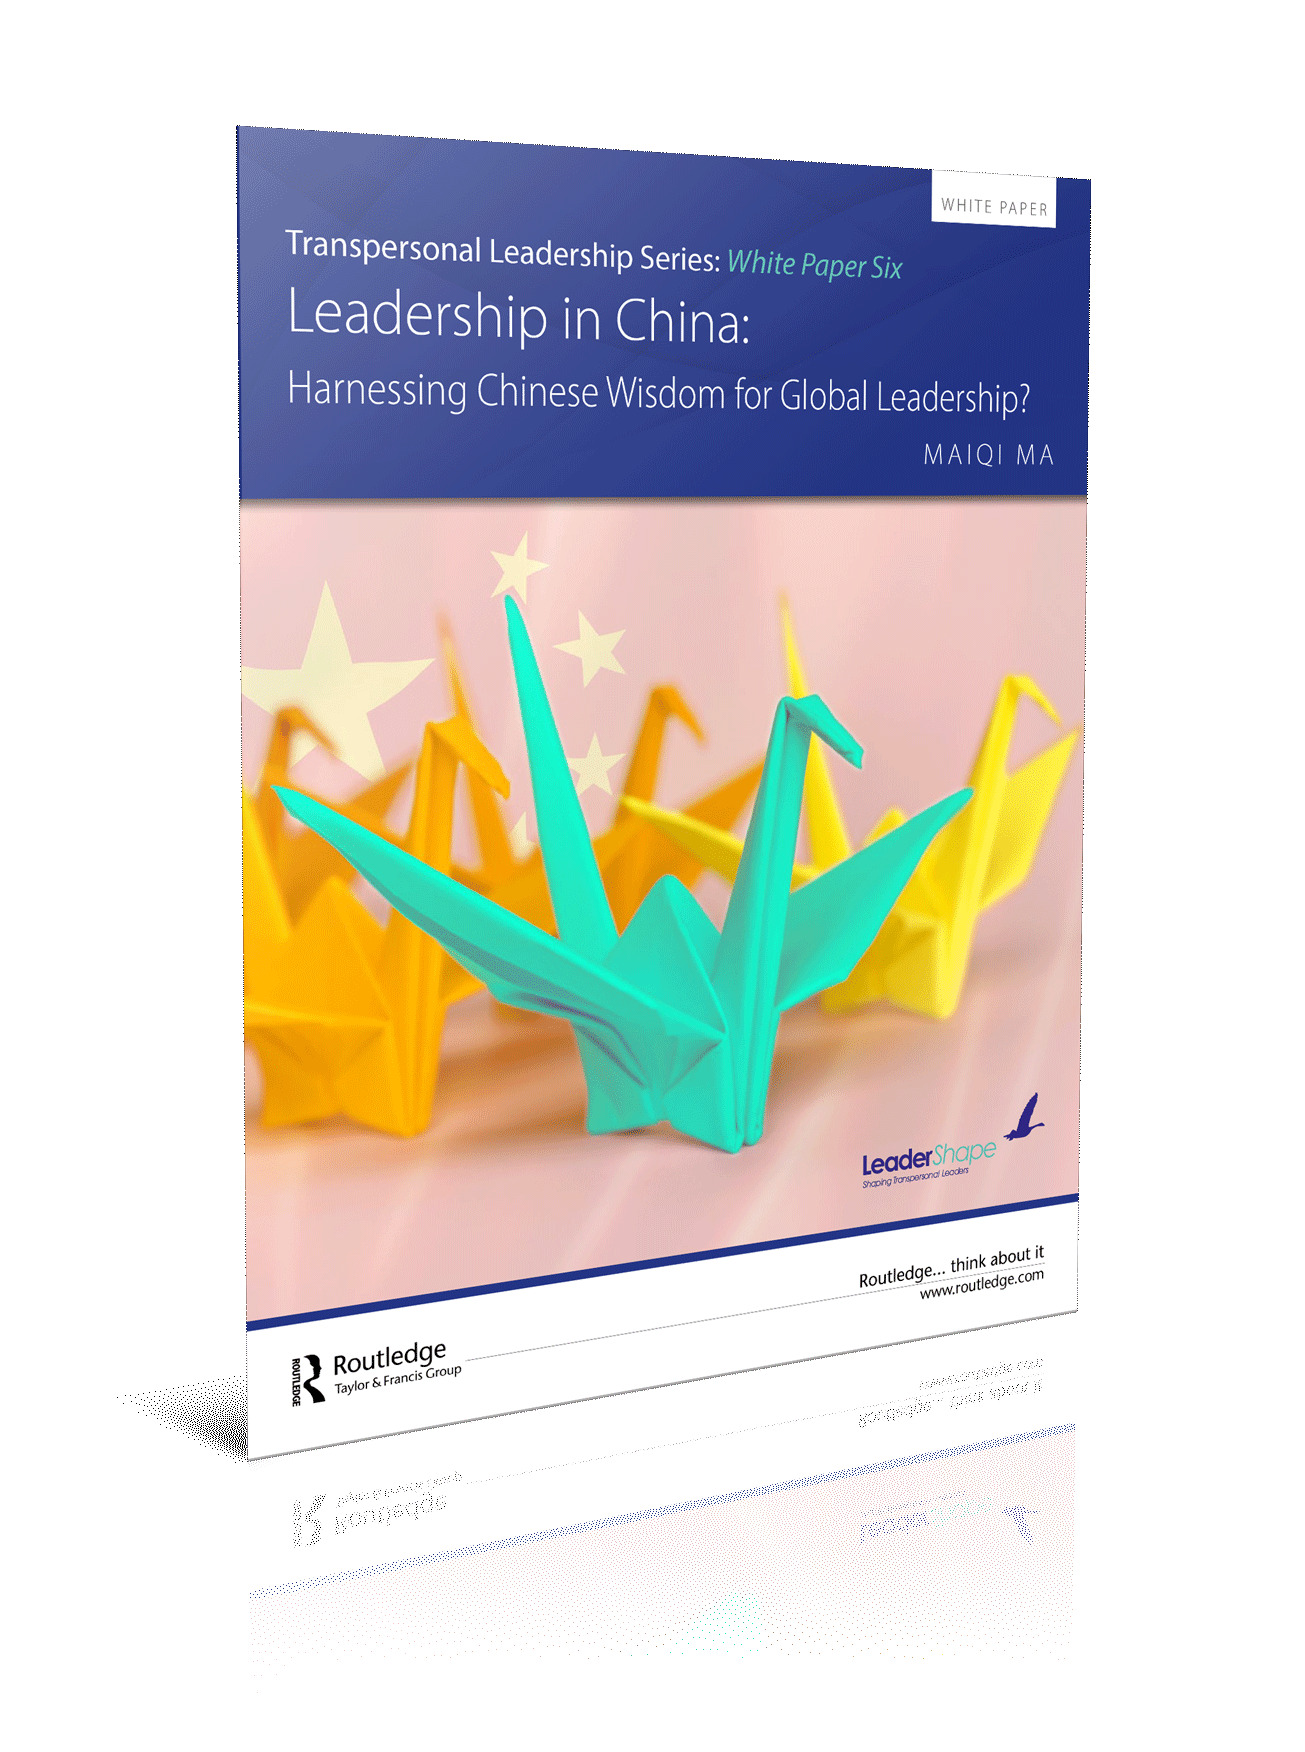 Leadership in China: Harnessing Chinese Wisdom for Global Leadership?